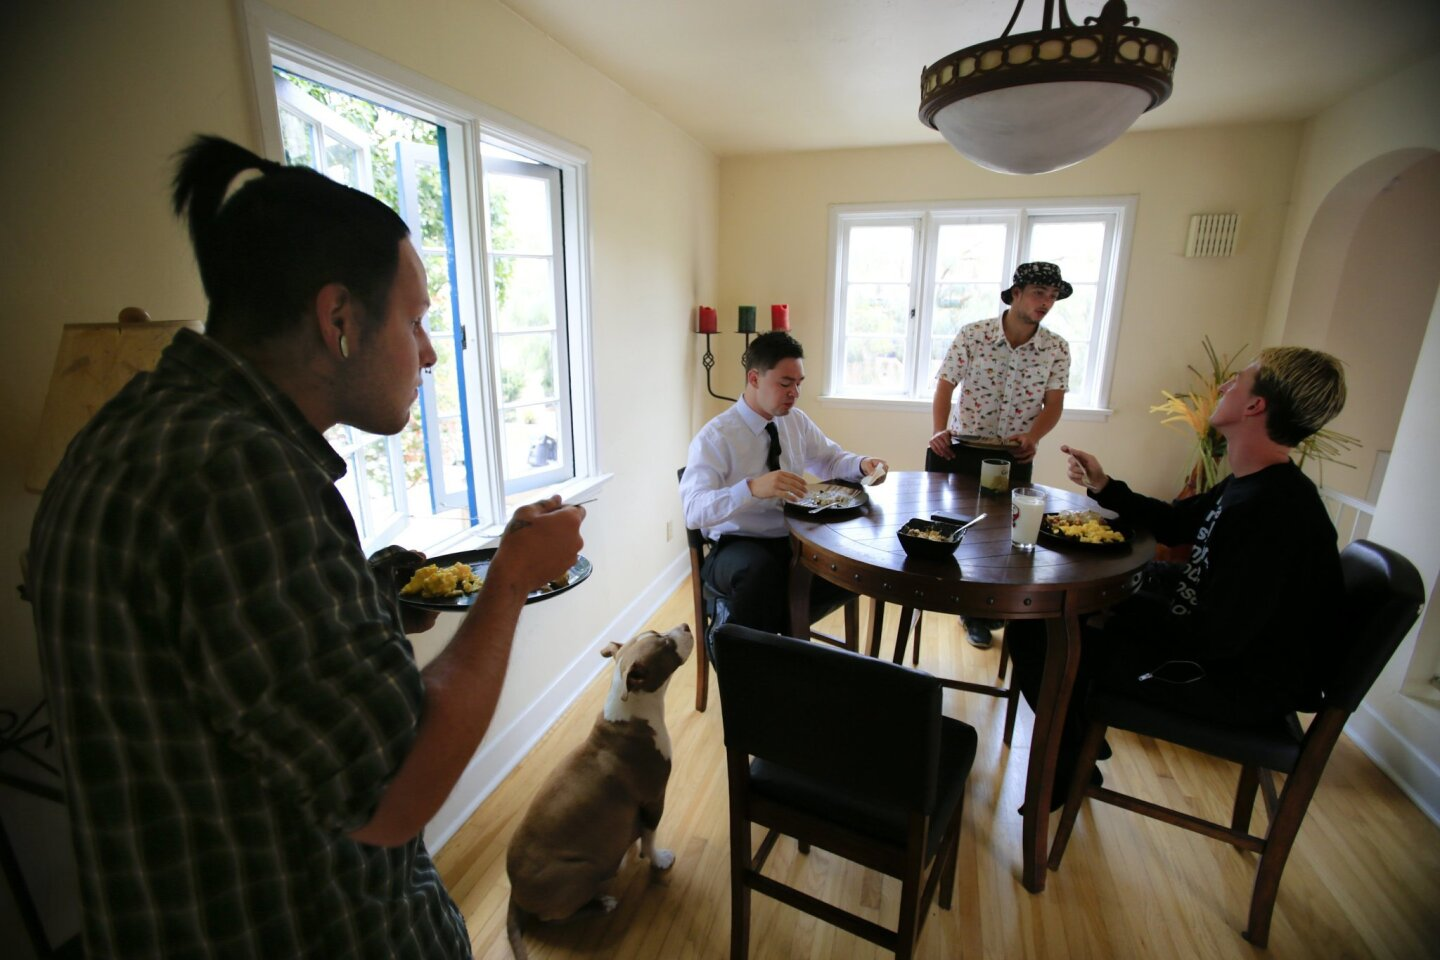 Blu Tomson, Ian Roehling, and Nick Wiggins, who are homeless, talk with Nick Adams, the house manager at the Urban Street Angels six bed men's home, one of two the homeless outreach organization runs.